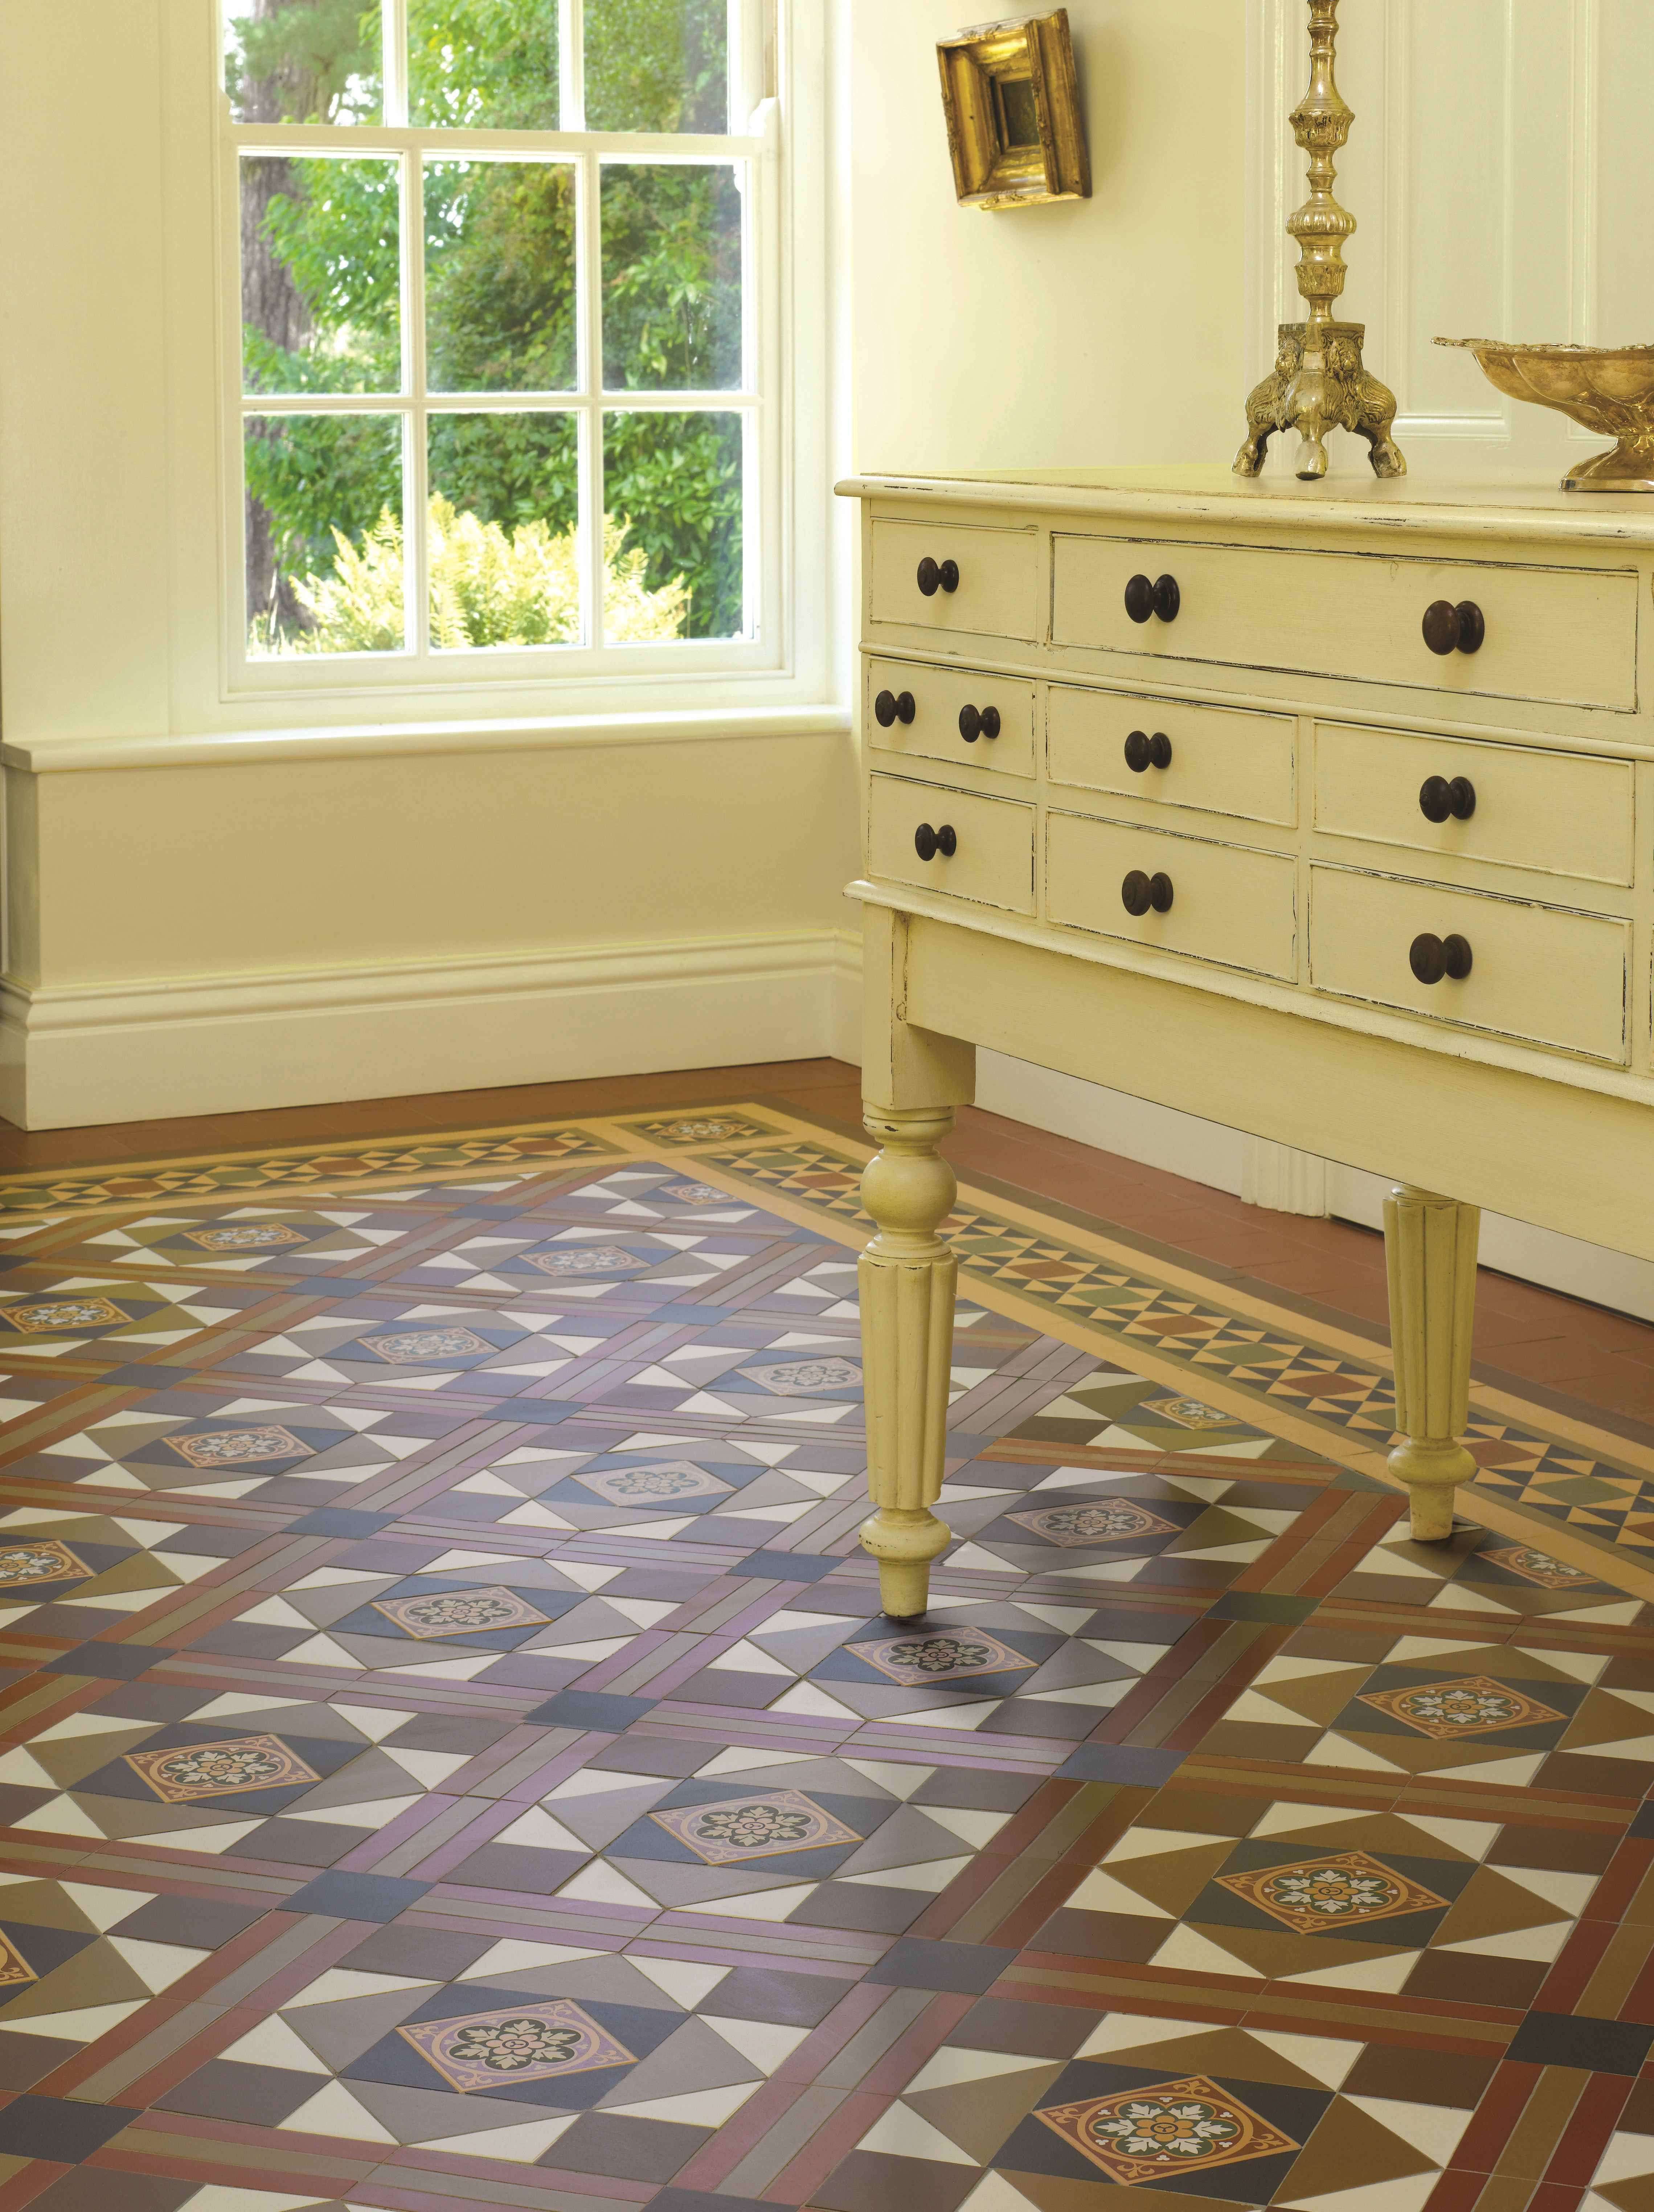 Pin by lita kellie on sup pinterest victorian tiled hallway victorian floor tile lindisfarne pattern with modified stevenson border in royal palladian black dover white brown and red dailygadgetfo Image collections